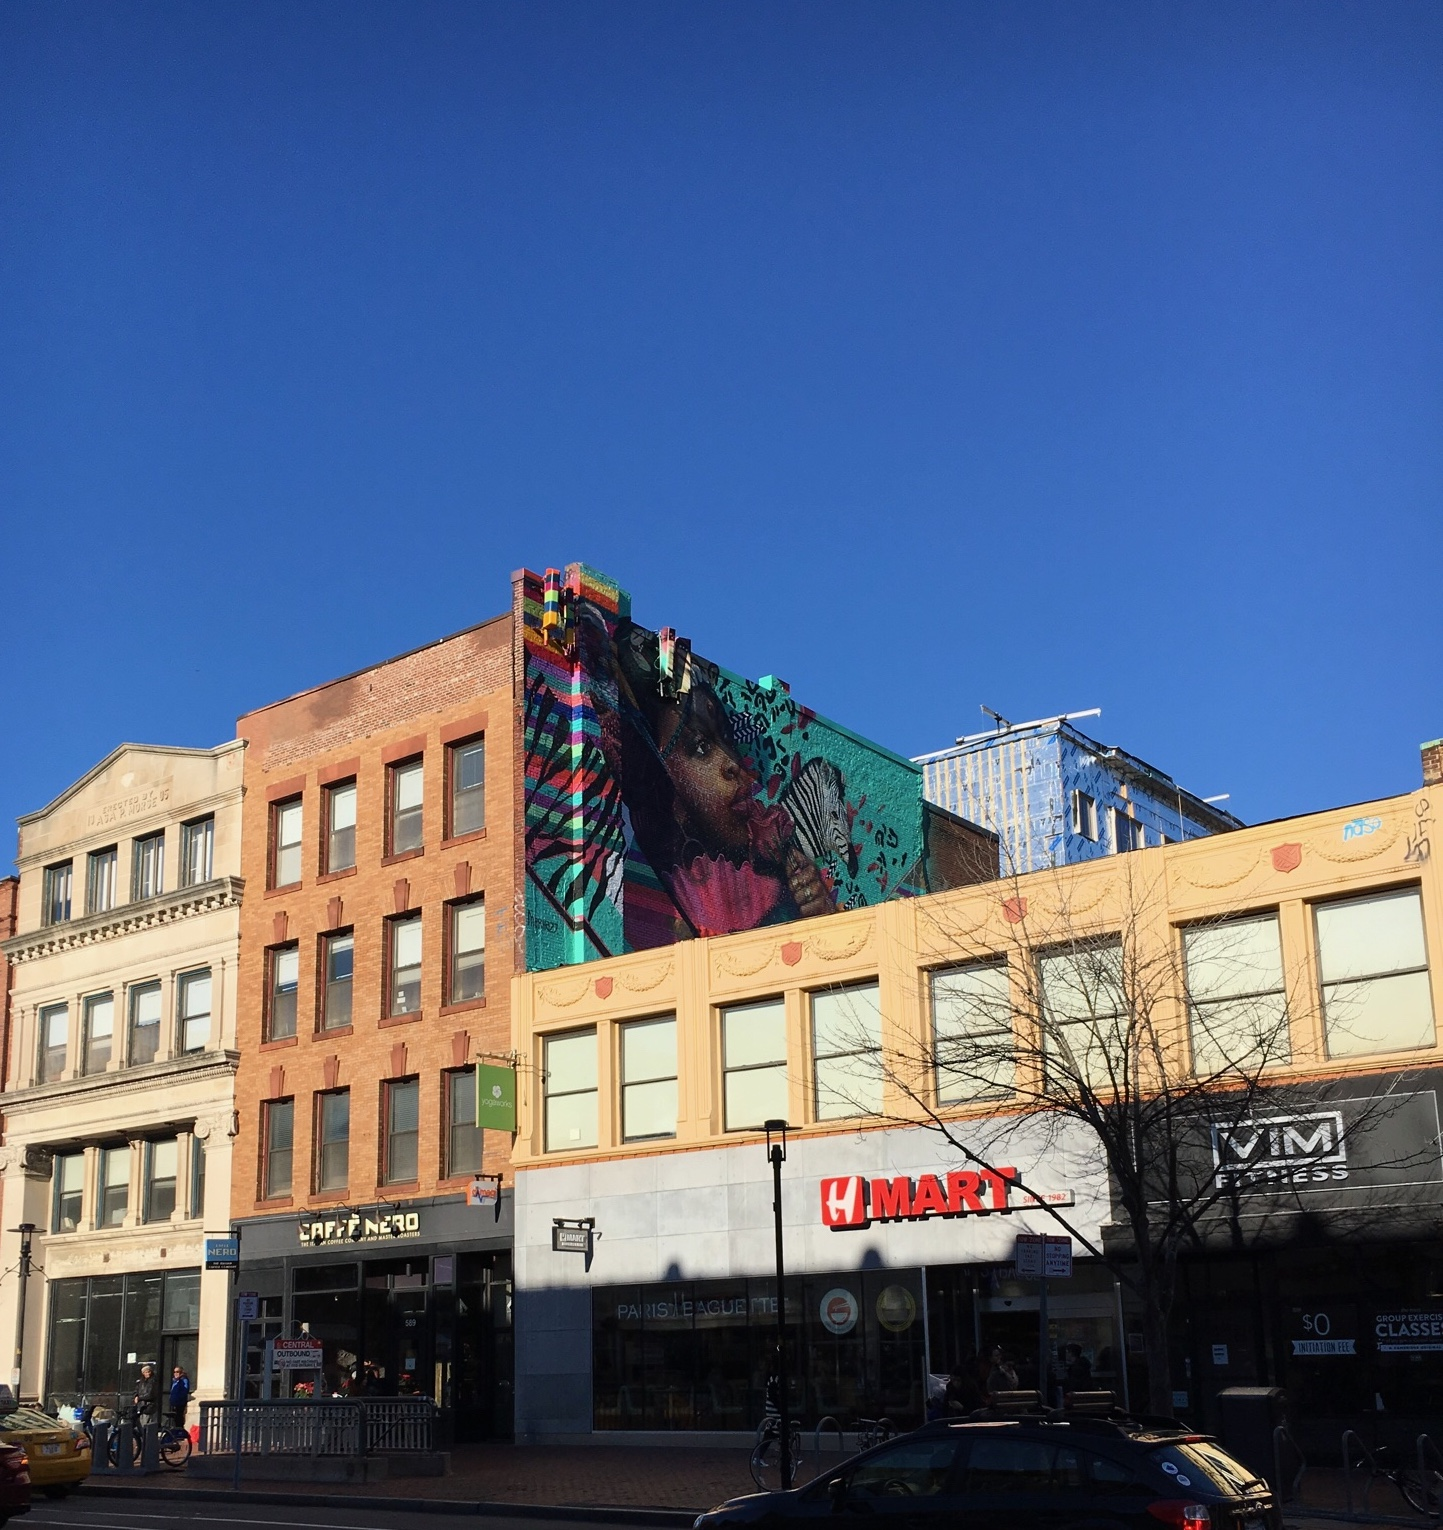 Affordable Appartments: Initial Thoughts On The Affordable Housing Overlay